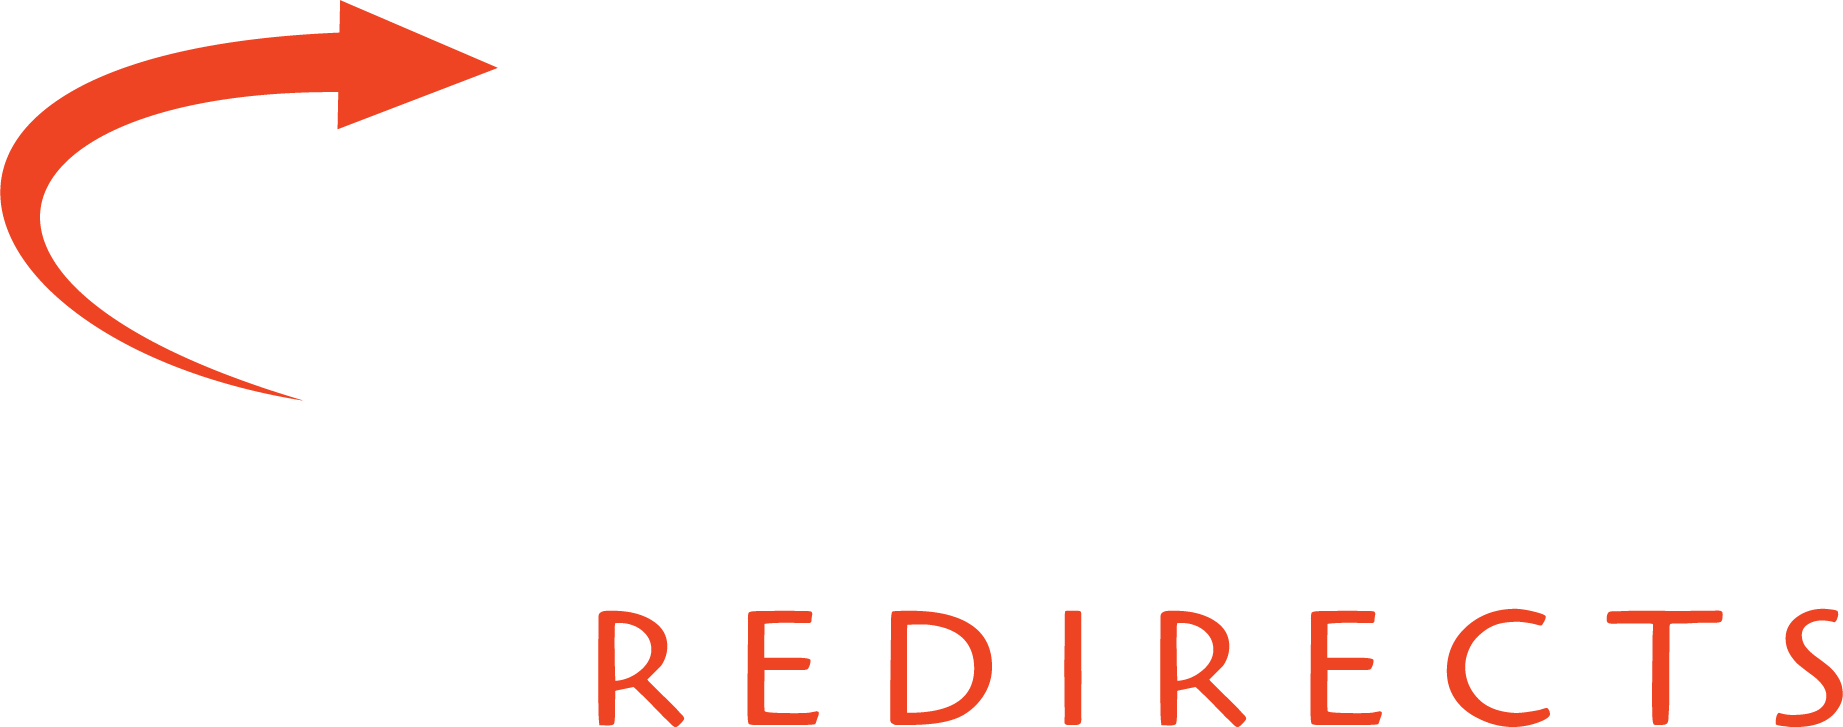 Swerve Redirects